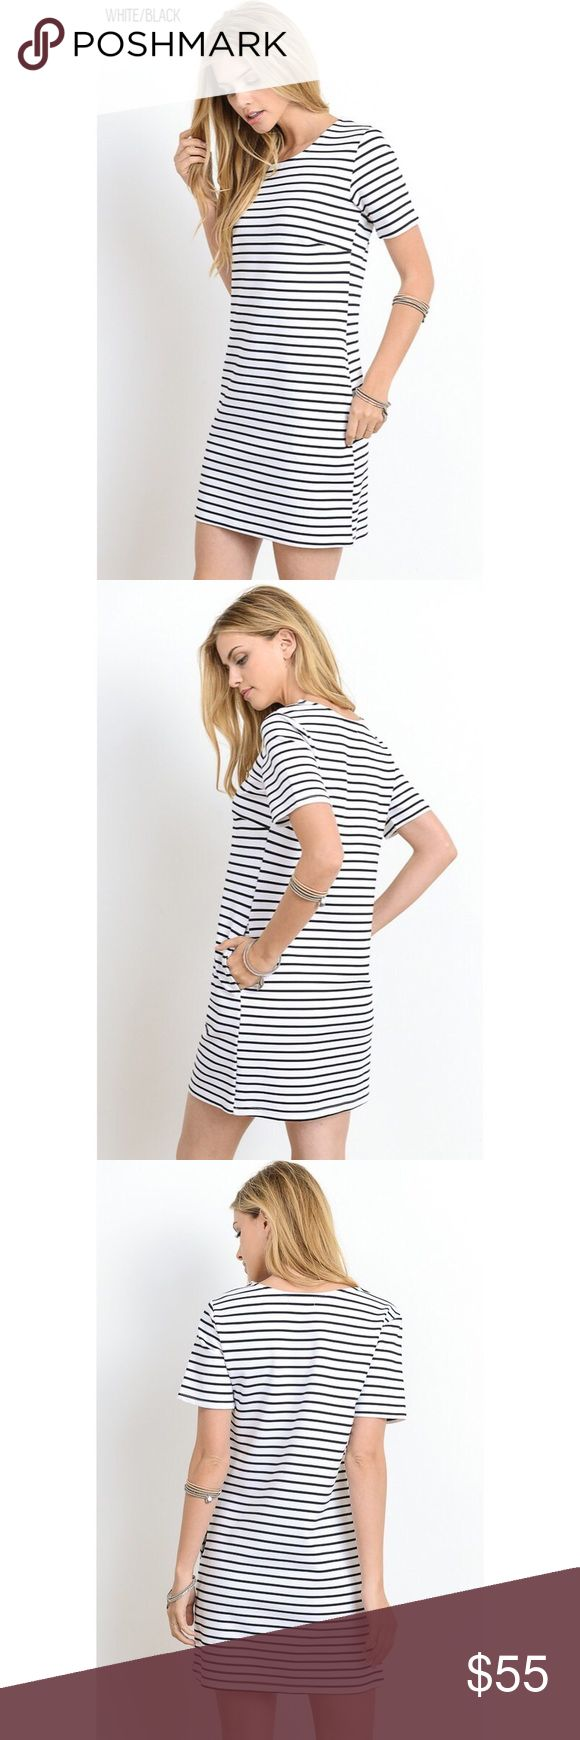 🆕 Daily Grind White/Black T-Shirt Striped Dress Dress it up or play is down in the Daily Grind White/Black T-Shirt Striped Dress! Best worn any day of the week and for any season! Features short sleeves, stretchy and loose material for a relaxed fit and pockets.  50% RAYON 45% NYLON 5% SPANDEX . . . If you would like to make an offer, please use the OFFER BUTTON. {10% discount on all 2+ orders} . . FOLLOW US✌🏽️ Insta 📸: shop.likenarly Facebook📱: likenarly Website 🌐: likeNarly.com…